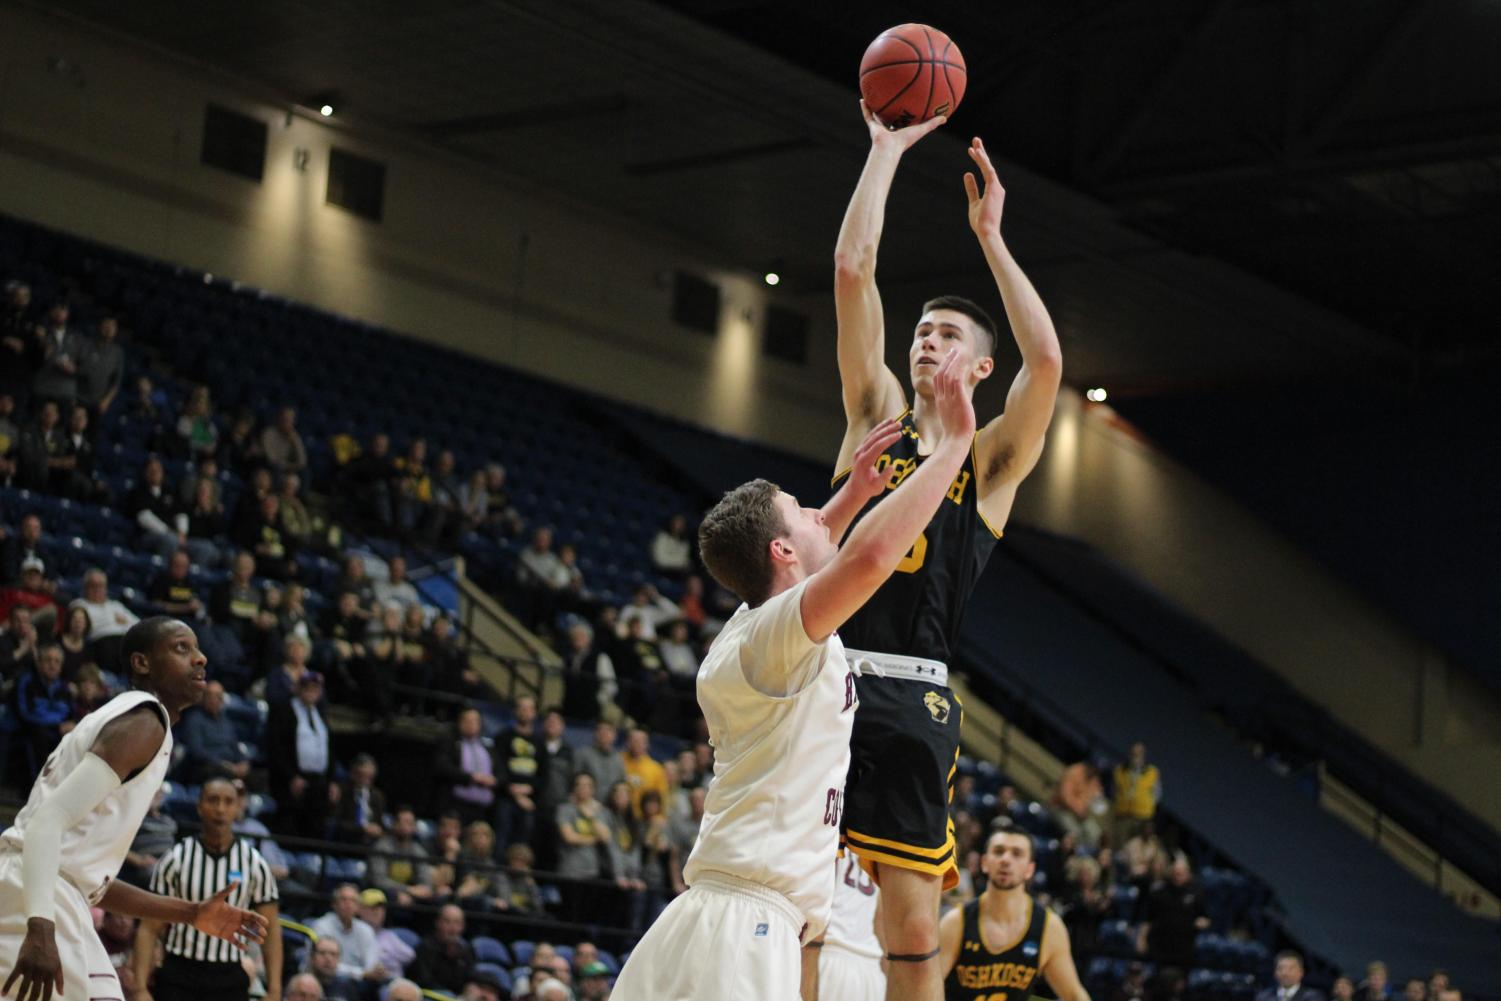 Sophomore forward Adam Fravert takes a jump shot in the first half against Ramapo College.